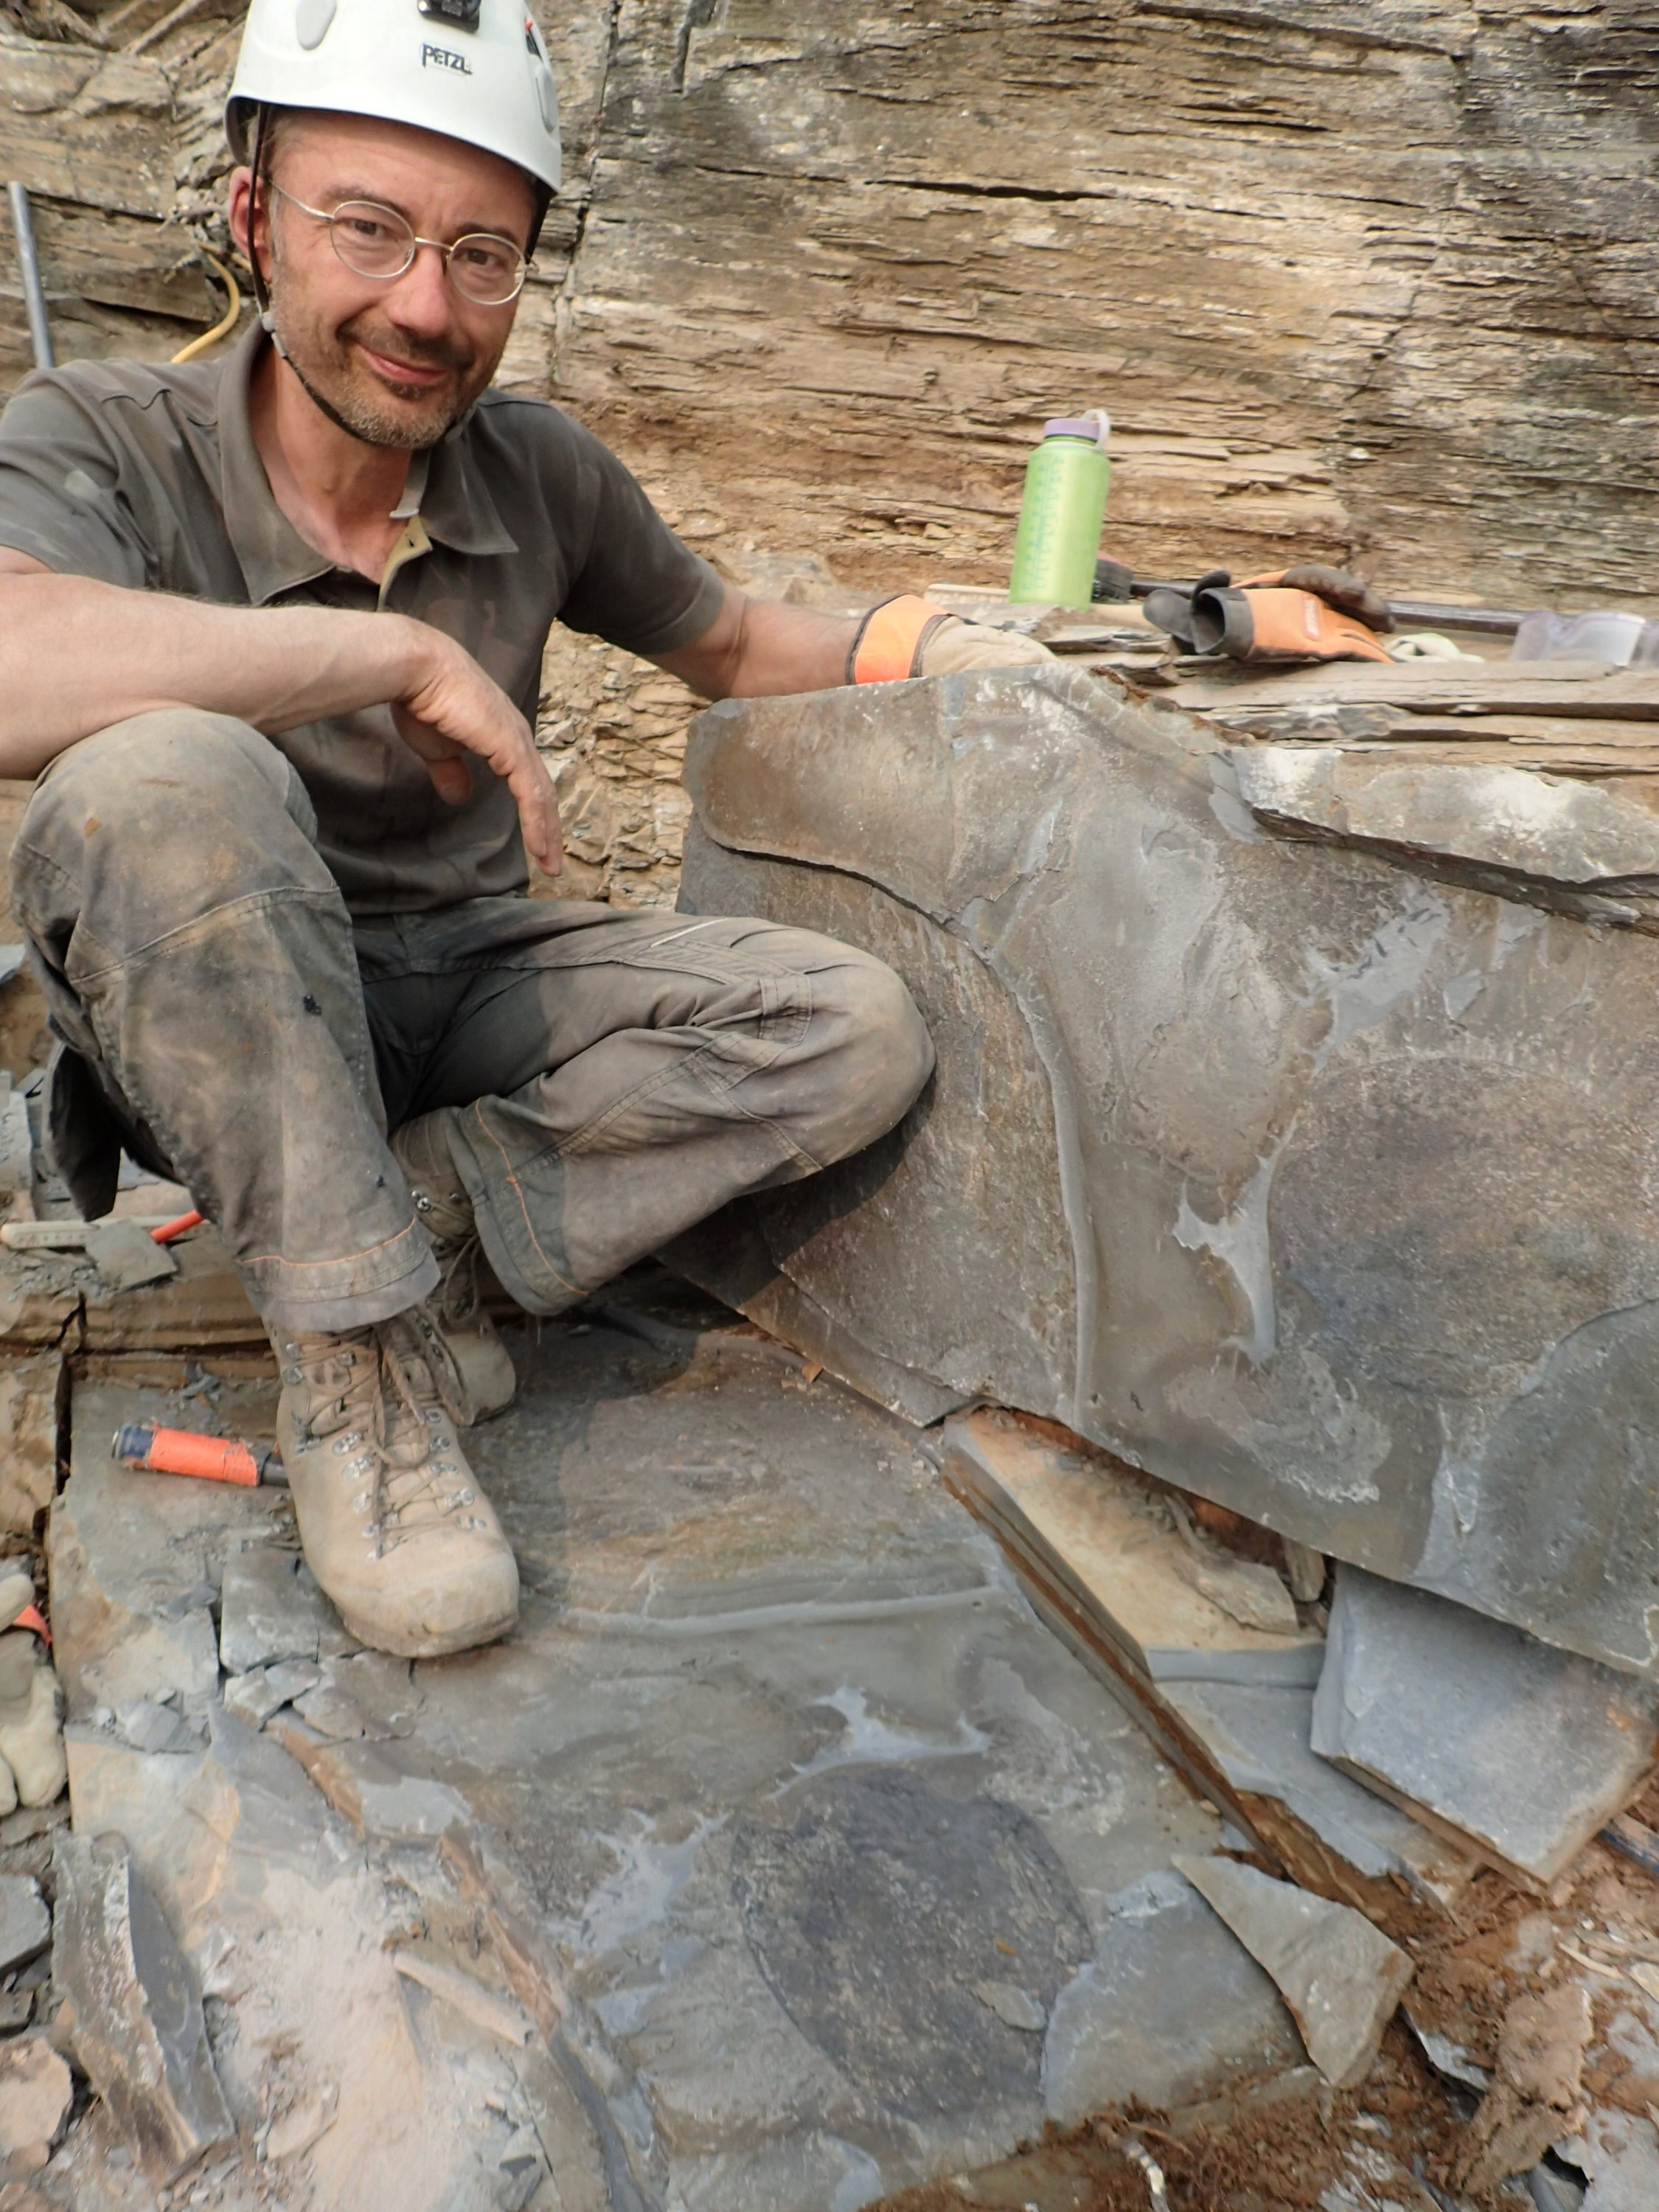 Paleontologist Jean-Bernard Caron of the Royal Ontario Museum sits above a fossil of Titanokorys gainesi at the quarry site located in Kootenay National Park, British Columbia, Canada, 2018. (Reuters Photo)